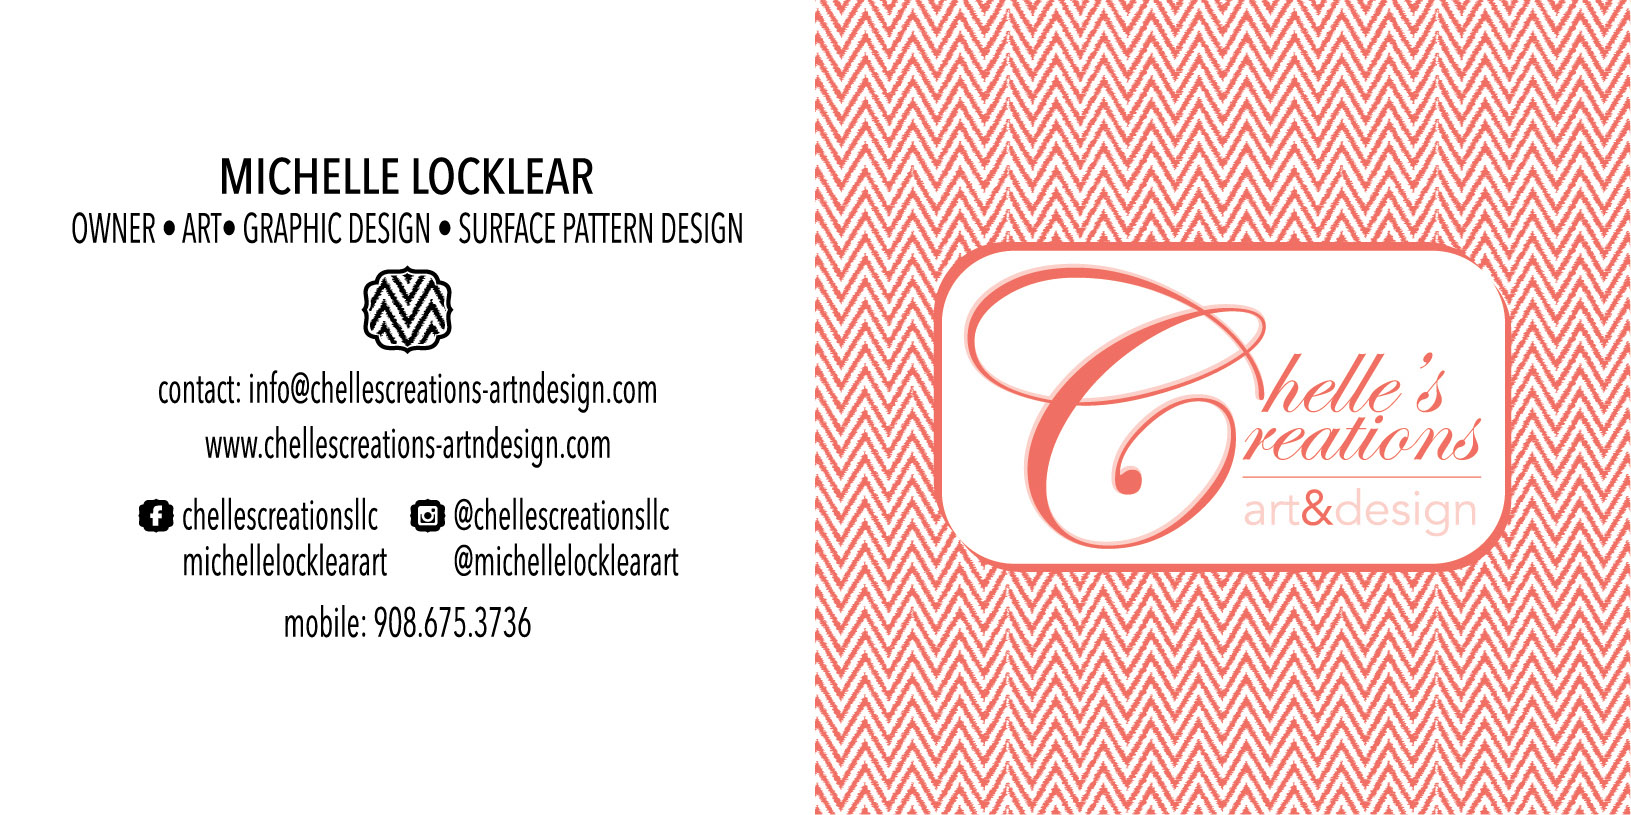 CC_BUSINESS CARD